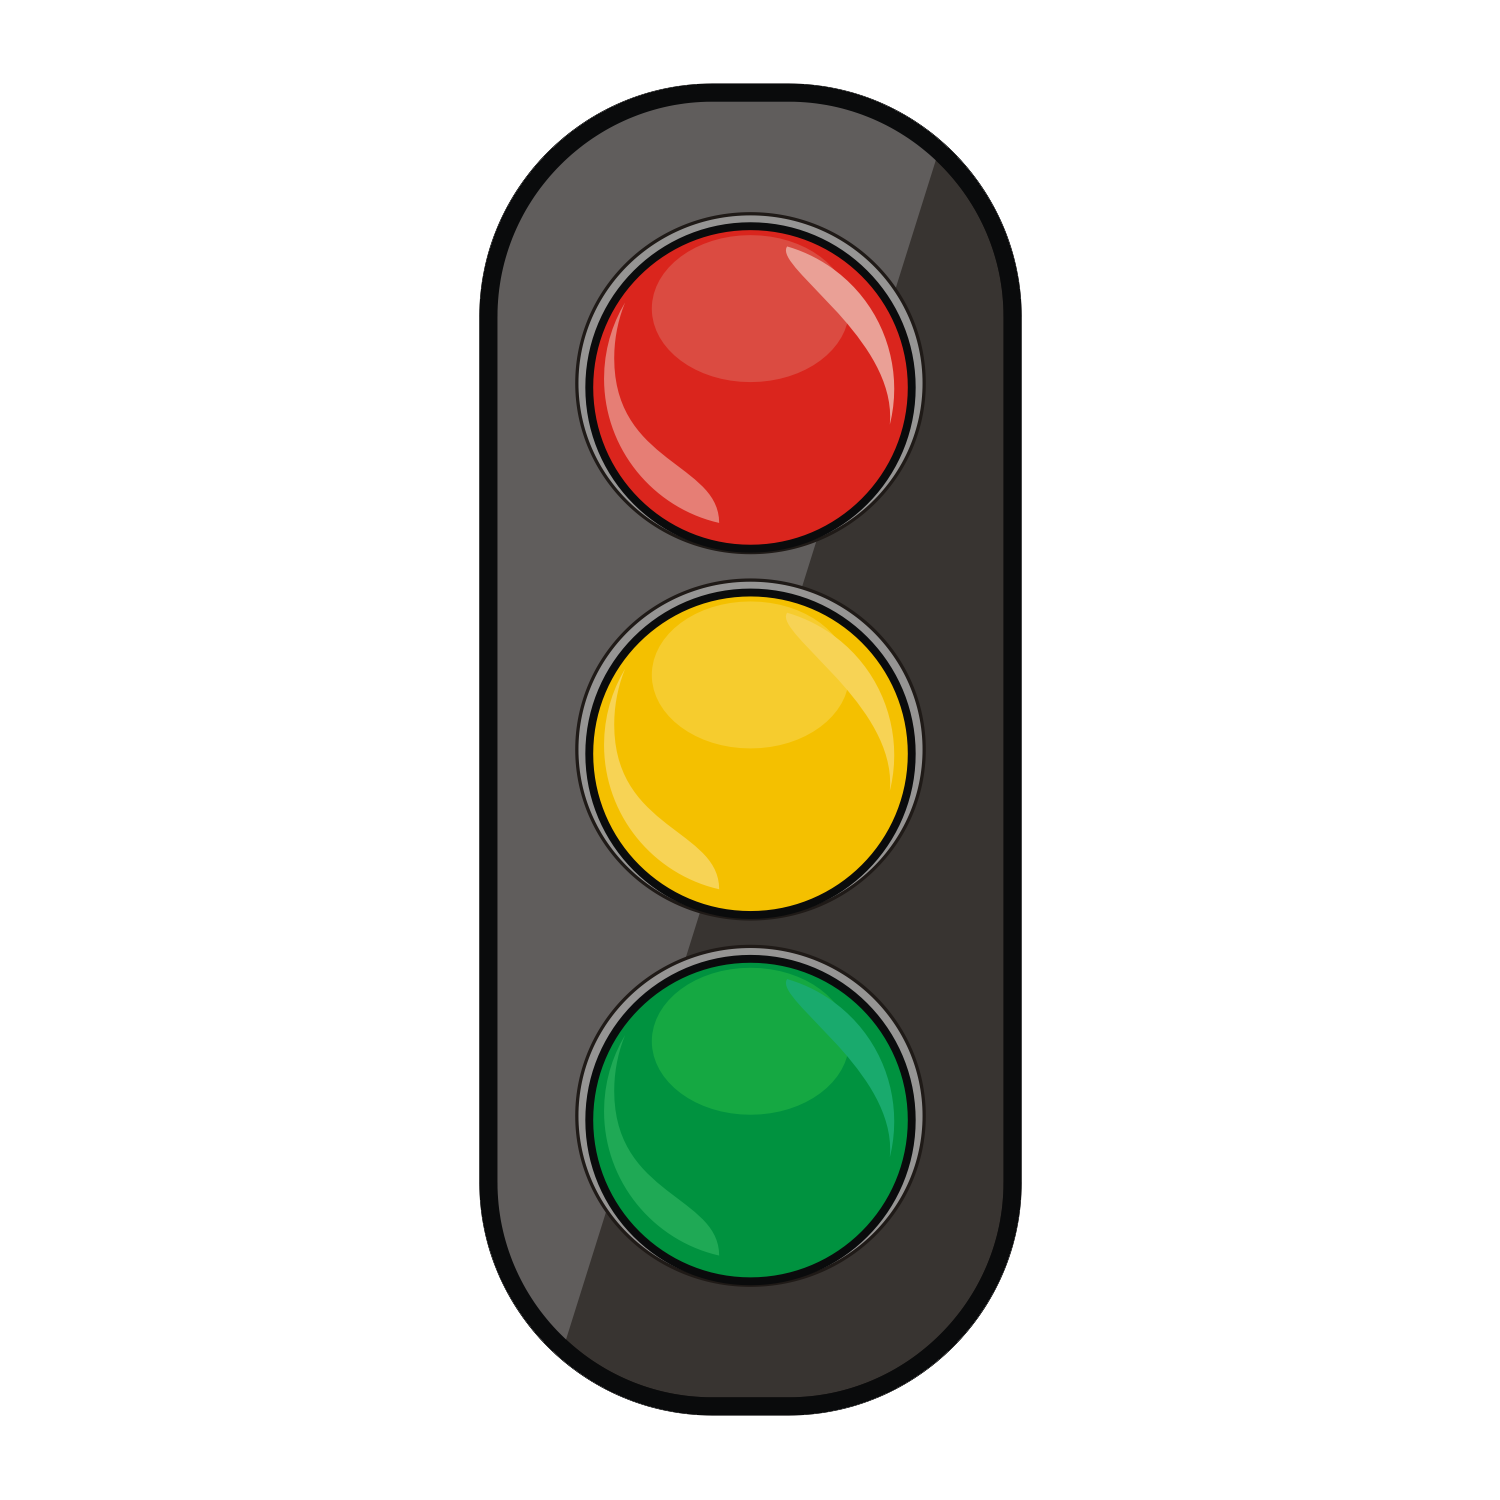 Light cross clipart png royalty free Traffic Light PNG Transparent Traffic Light.PNG Images. | PlusPNG png royalty free